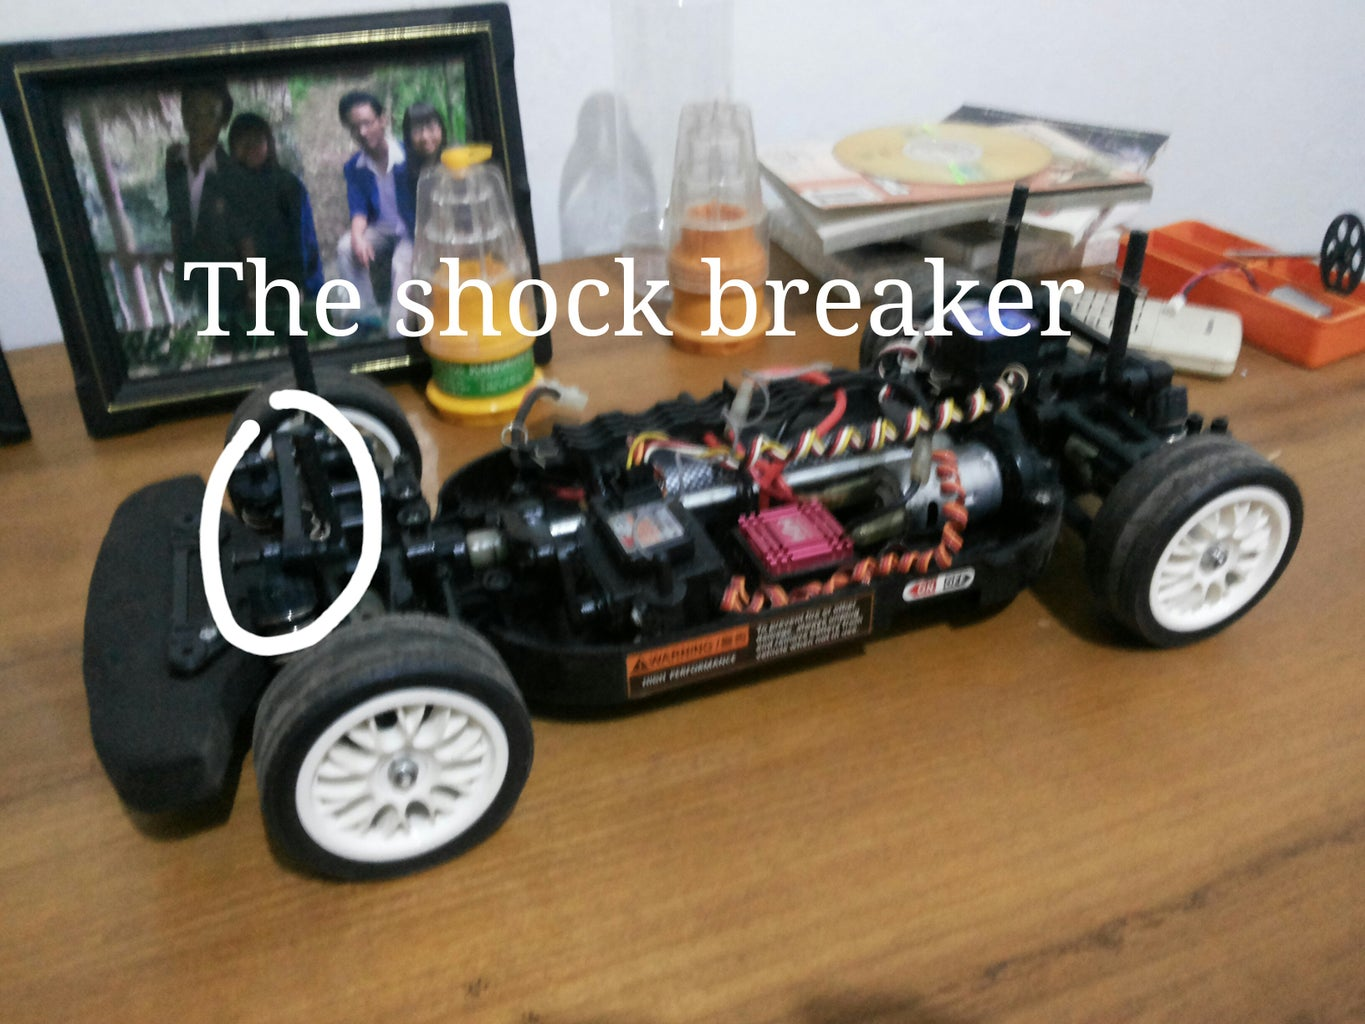 Open Up and Unscrew the Shock Breaker.